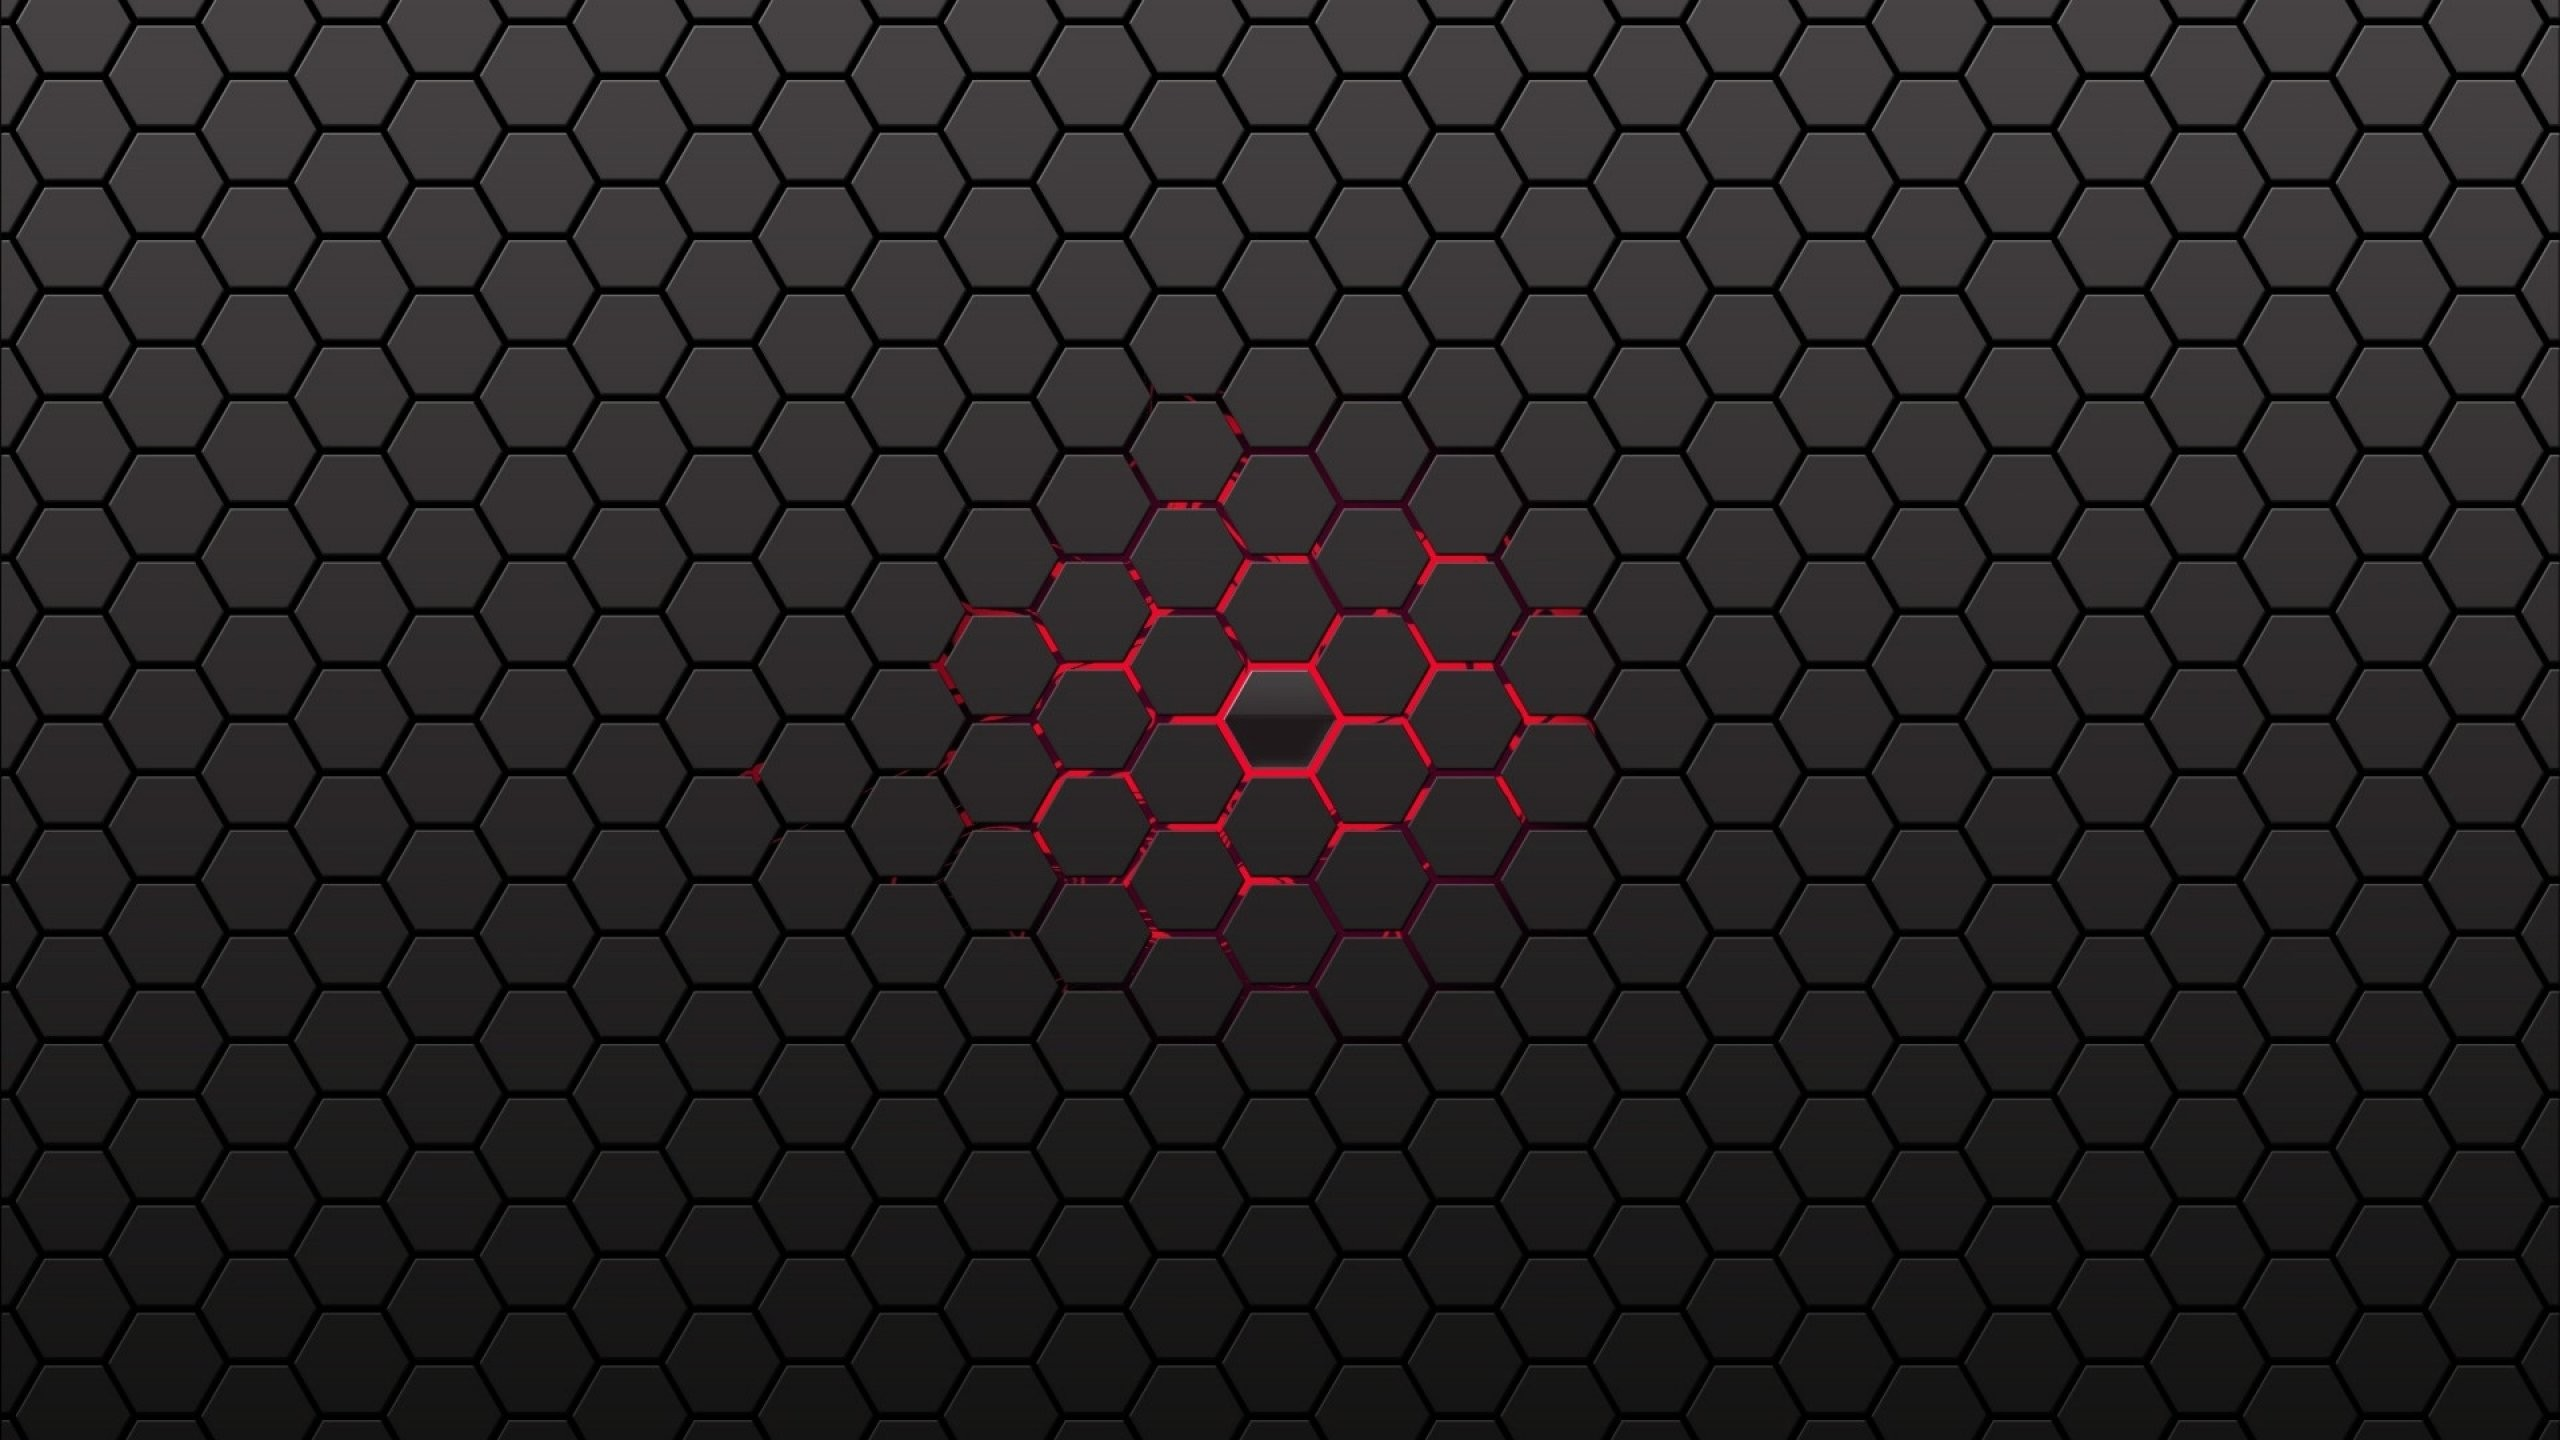 Res: 2560x1440, Black Honeycomb Wallpaper Center Lines Backgrounds Red wallpaper |   | 914407 | WallpaperUP